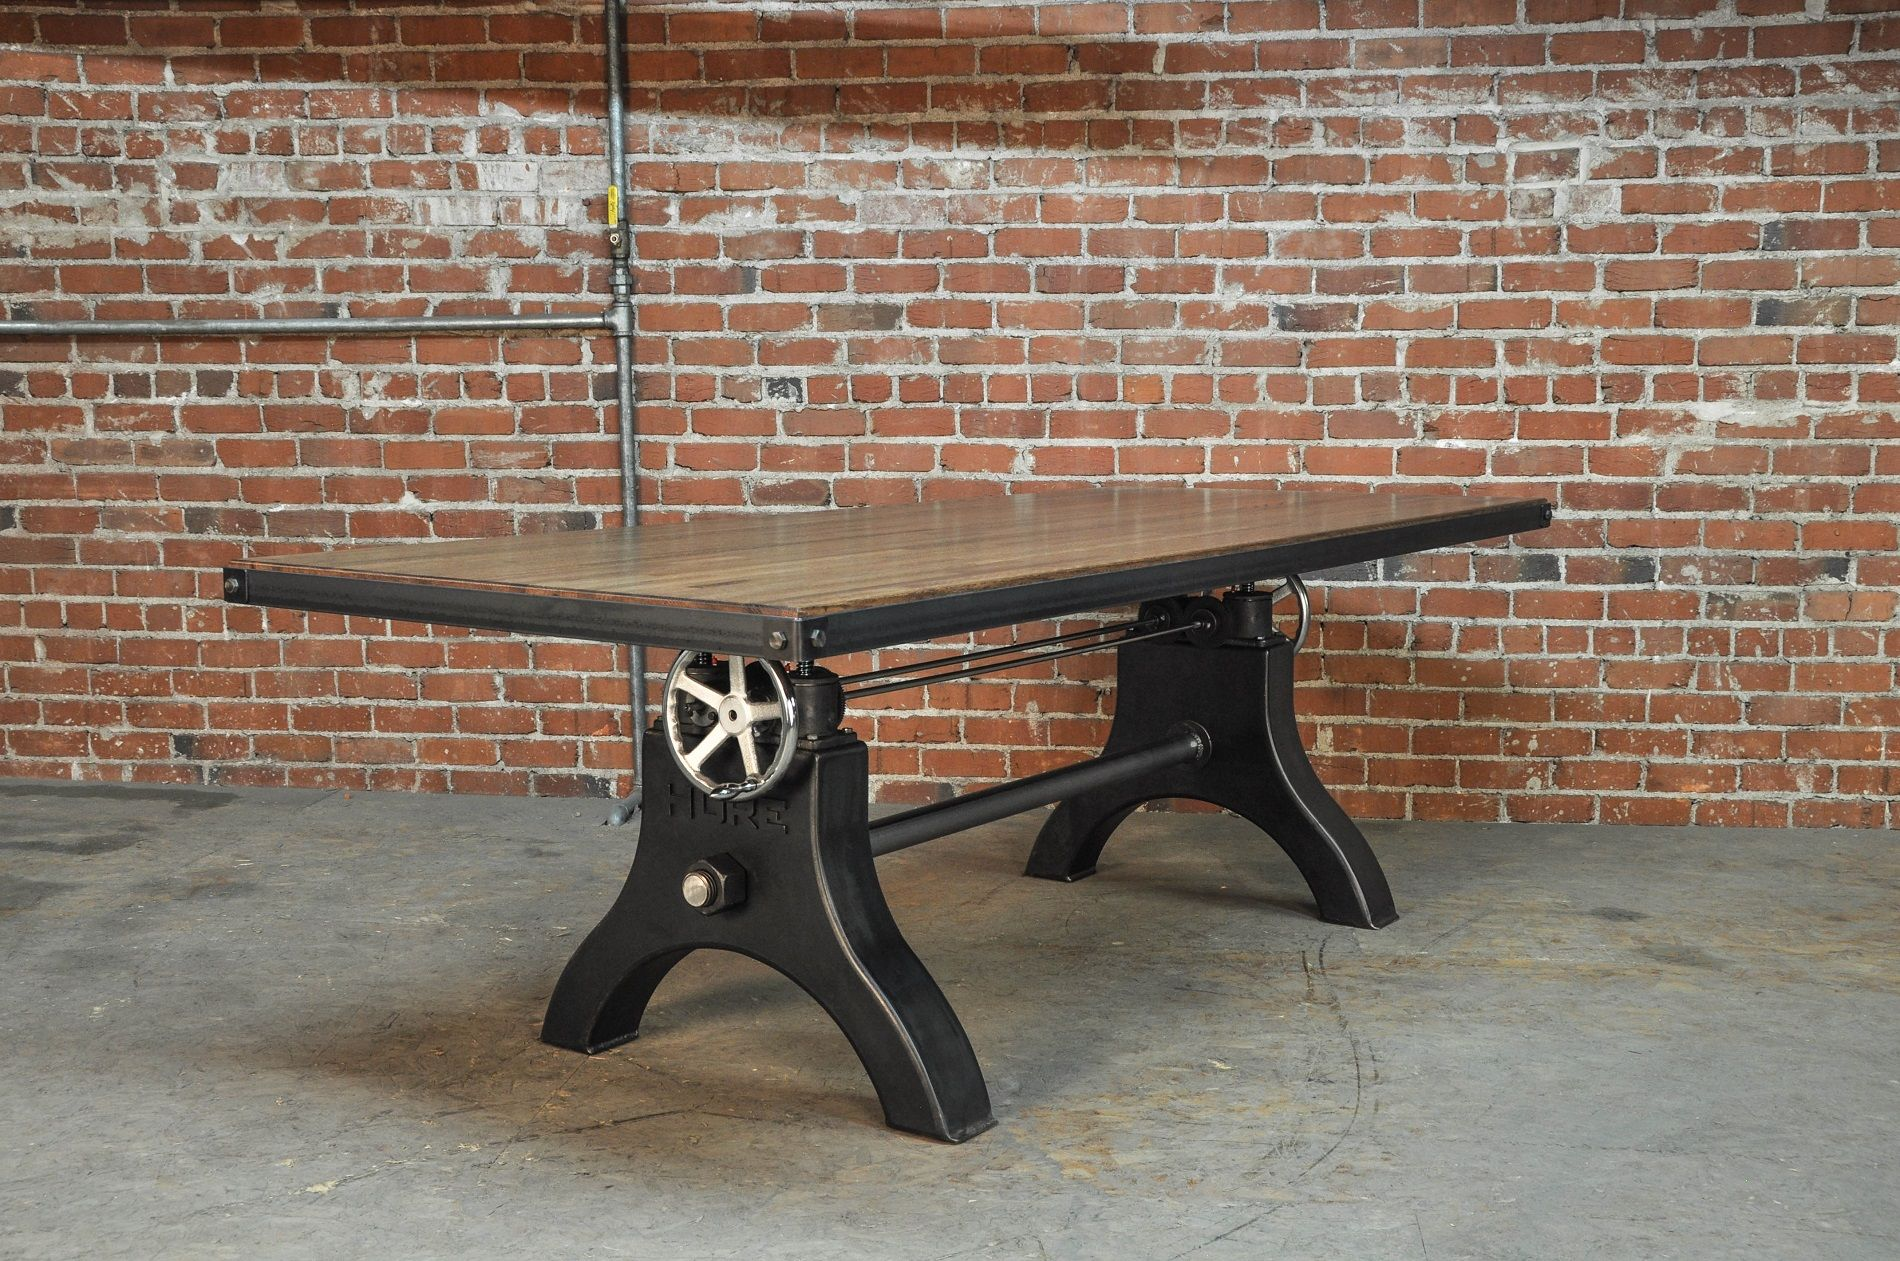 Hure conference table with faux crank vintage industrial furniture - Hure Crank Table With A Boxcar Top By Vintage Industrial Furniture In Phoenix Az